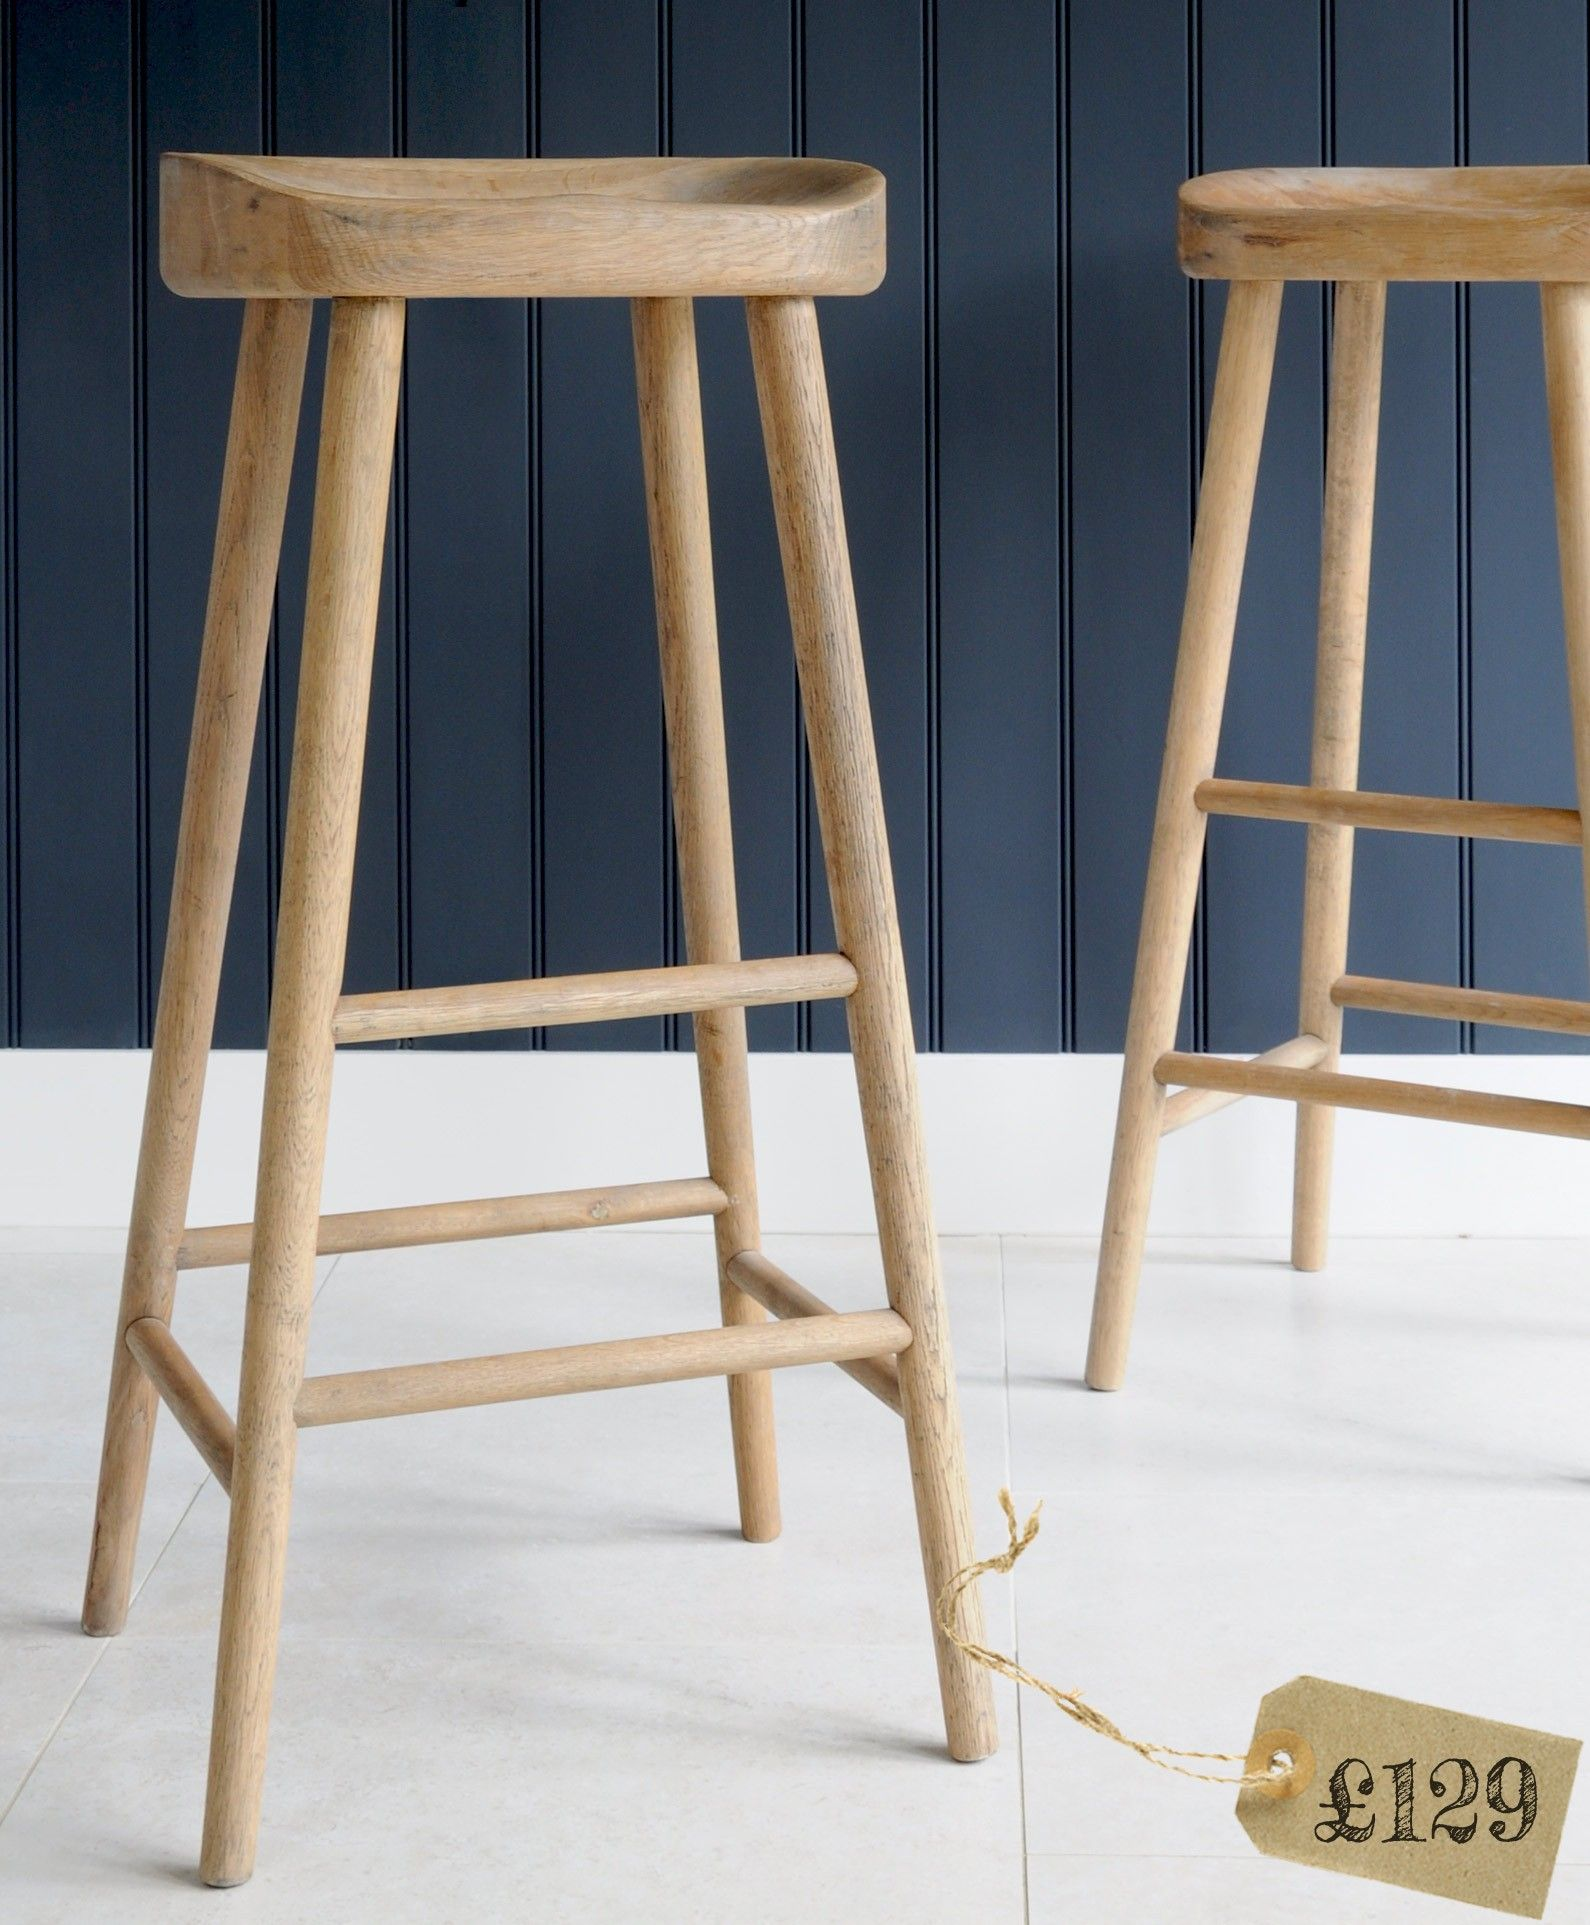 Bailey Weathered Oak Bar Stool Dimensions W 42cm X D 36cm X H 81cm Bar Stools Oak Bar Stools Kitchen Bar Stools